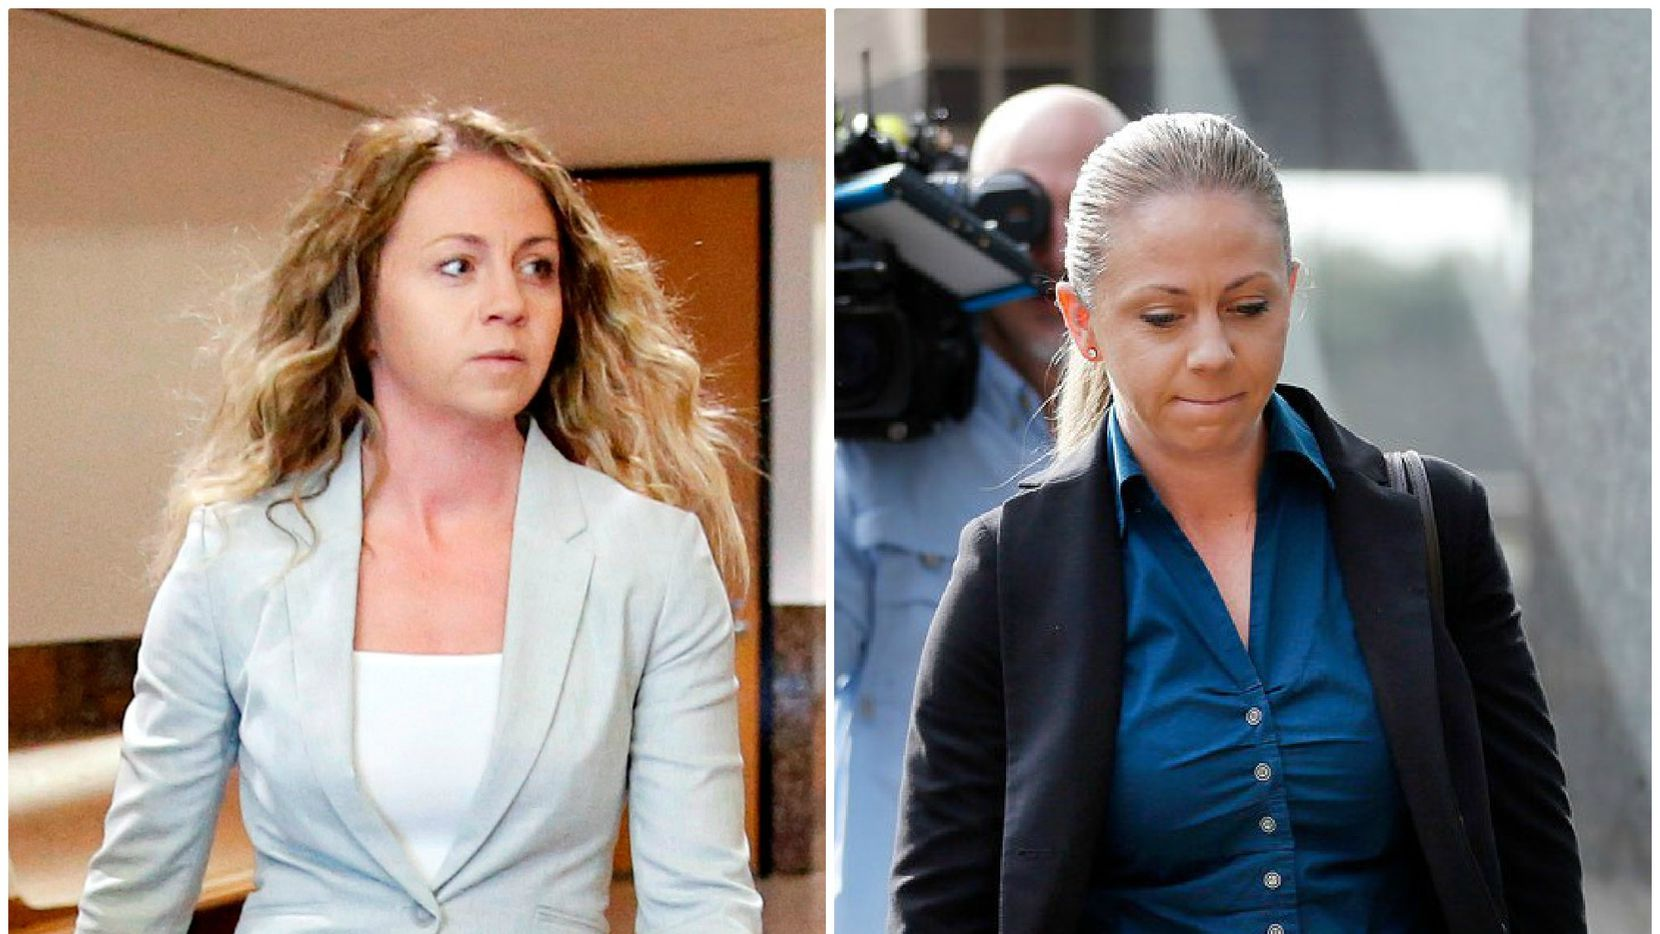 Amber Guyger's new look is no accident, say attorneys